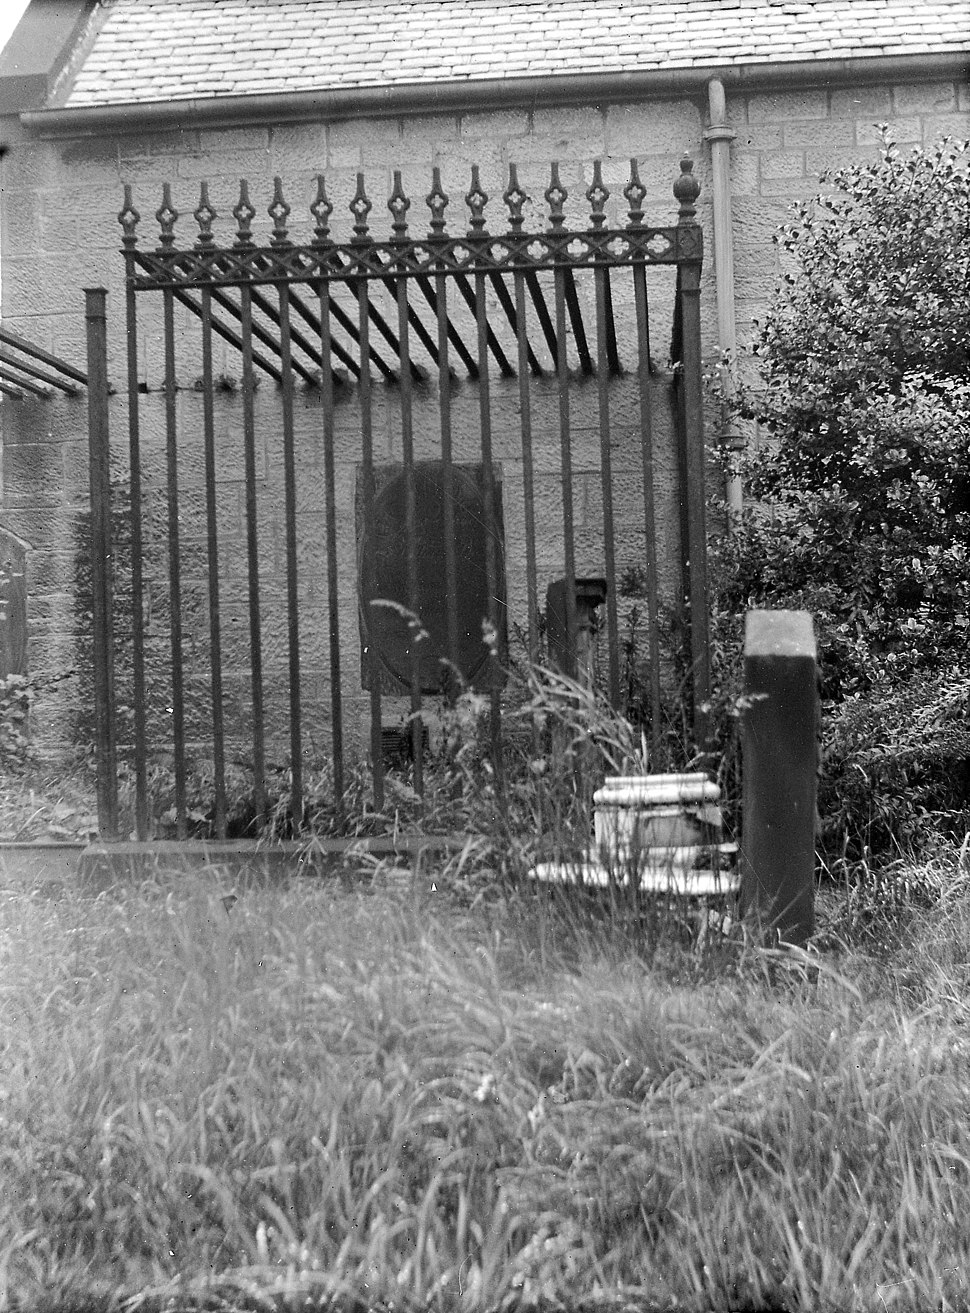 Railings used to protect graves from body snatchers Wellcome M0015588